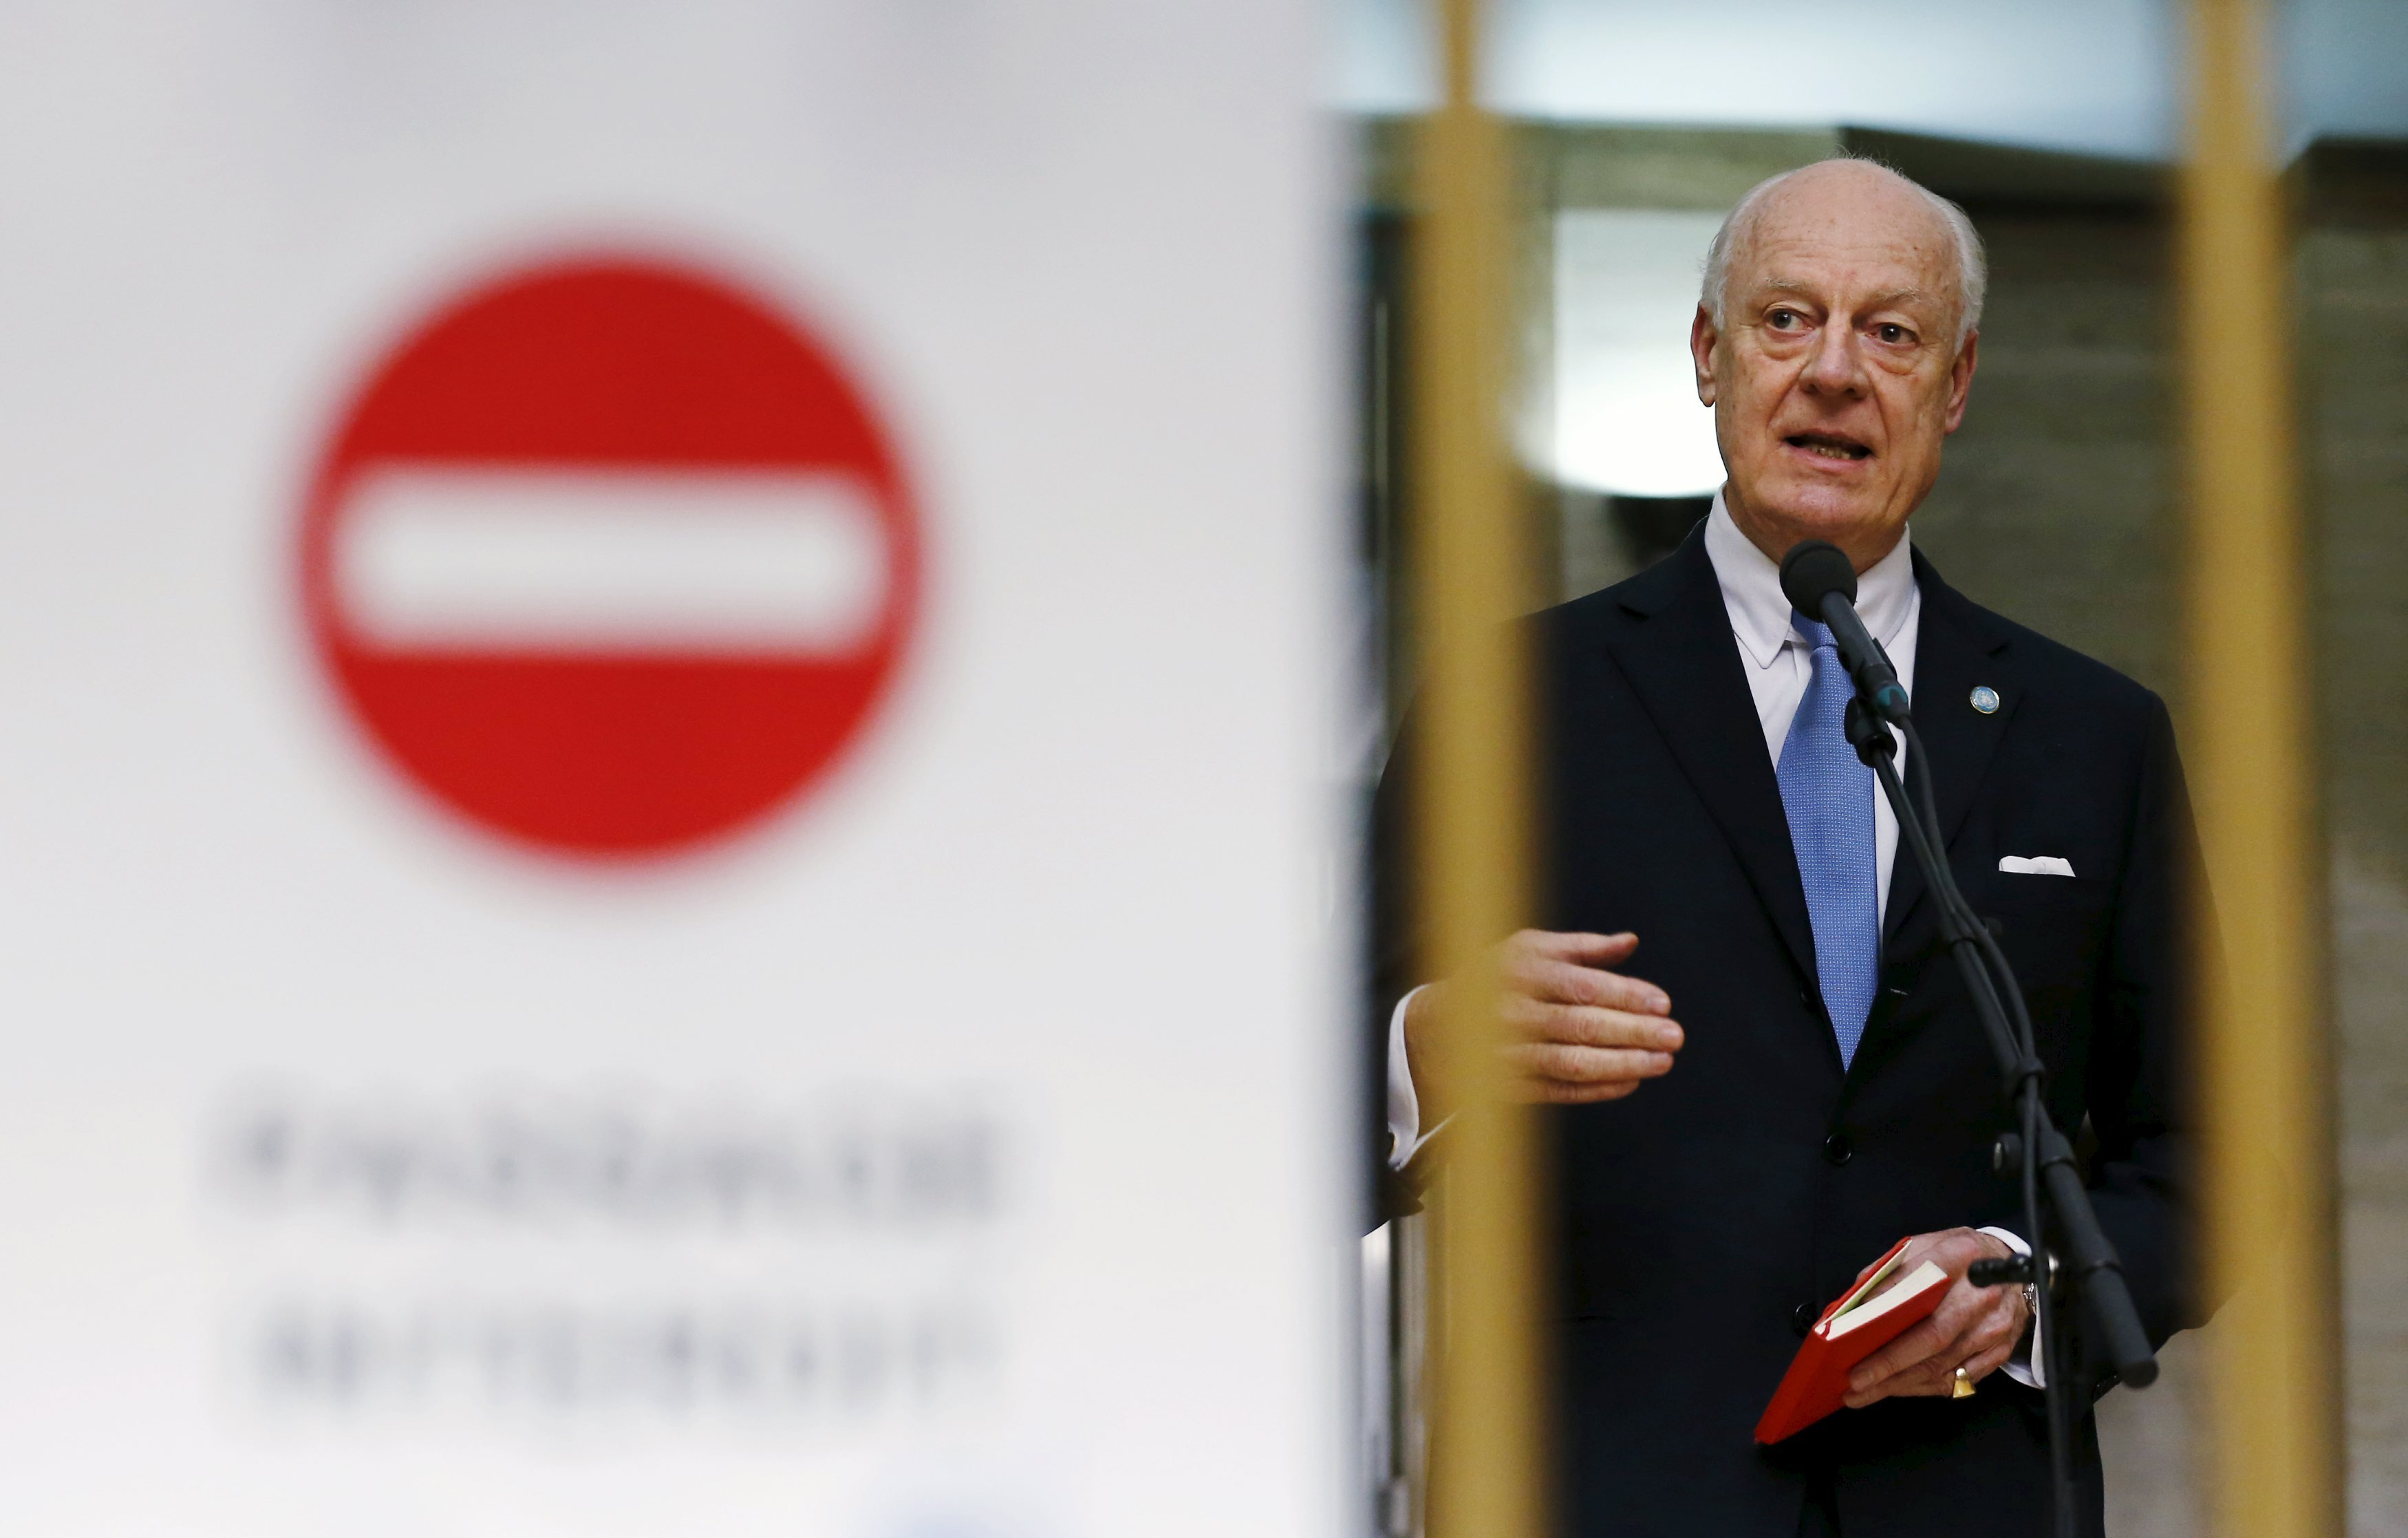 U.N. mediator for Syria Staffan de Mistura delivers a statement after the opening of the Syrian peace talks at the United Nations European headquarters in Geneva, Switzerland, January 29, 2016